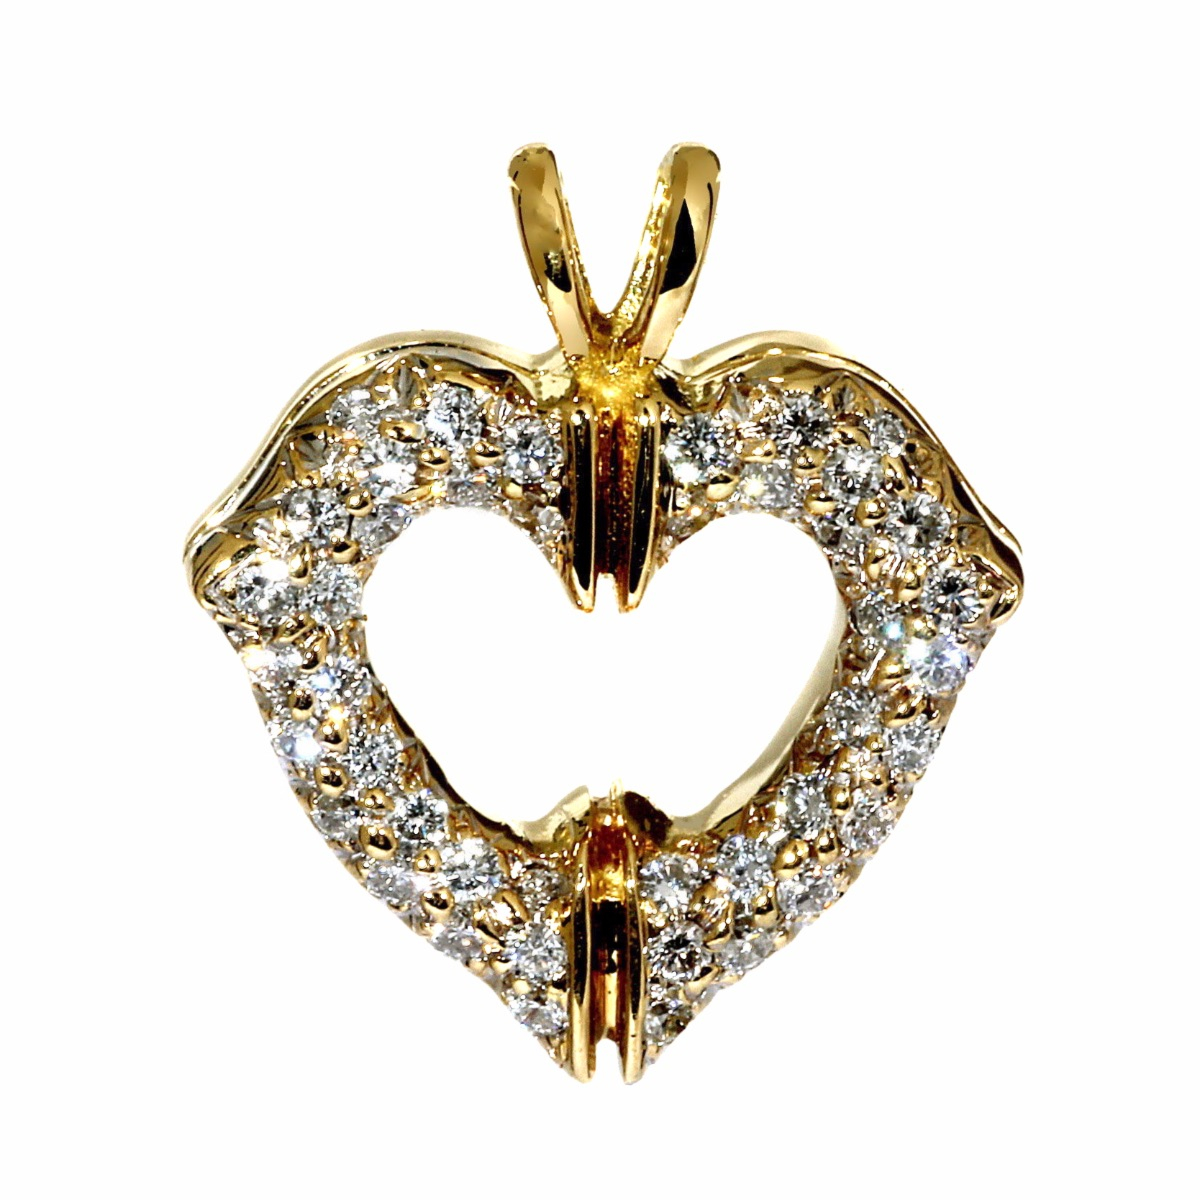 Cartier Heart Gold Diamond Pendant - Cartier Jewelry